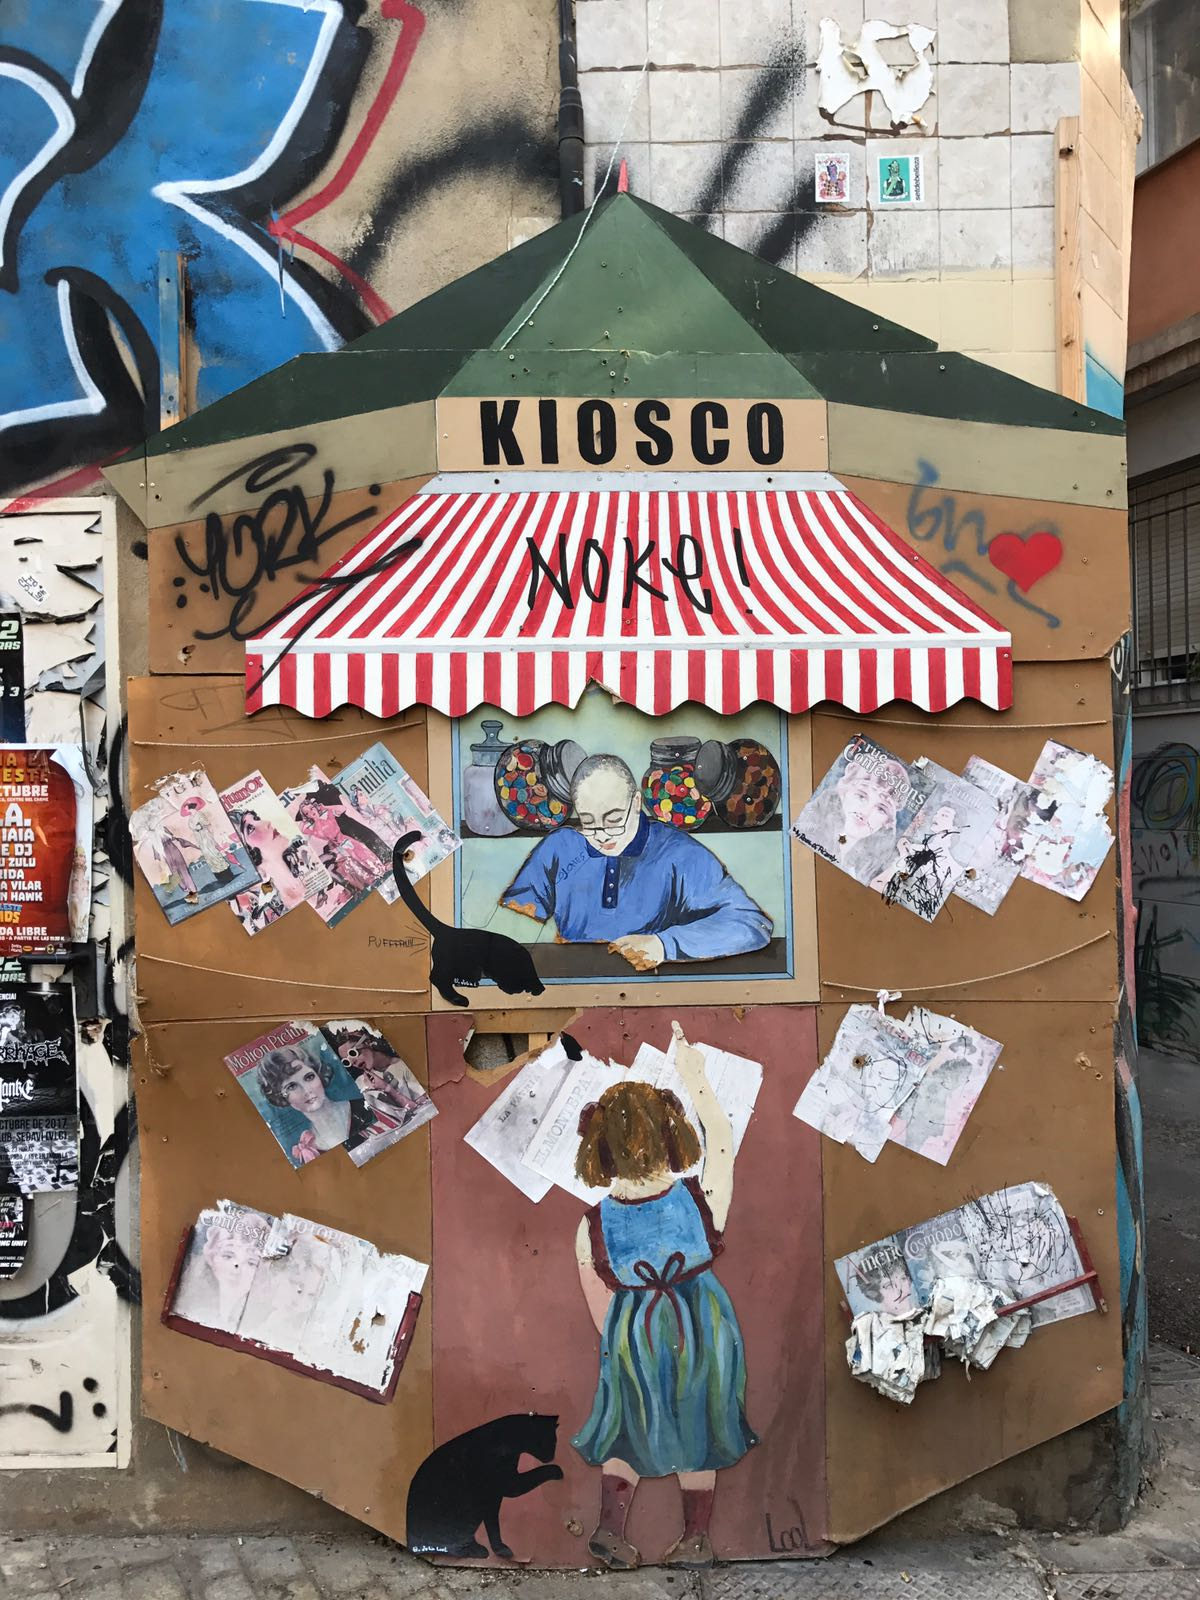 Mural of a kiosk newsagent selling sweets to a little girl